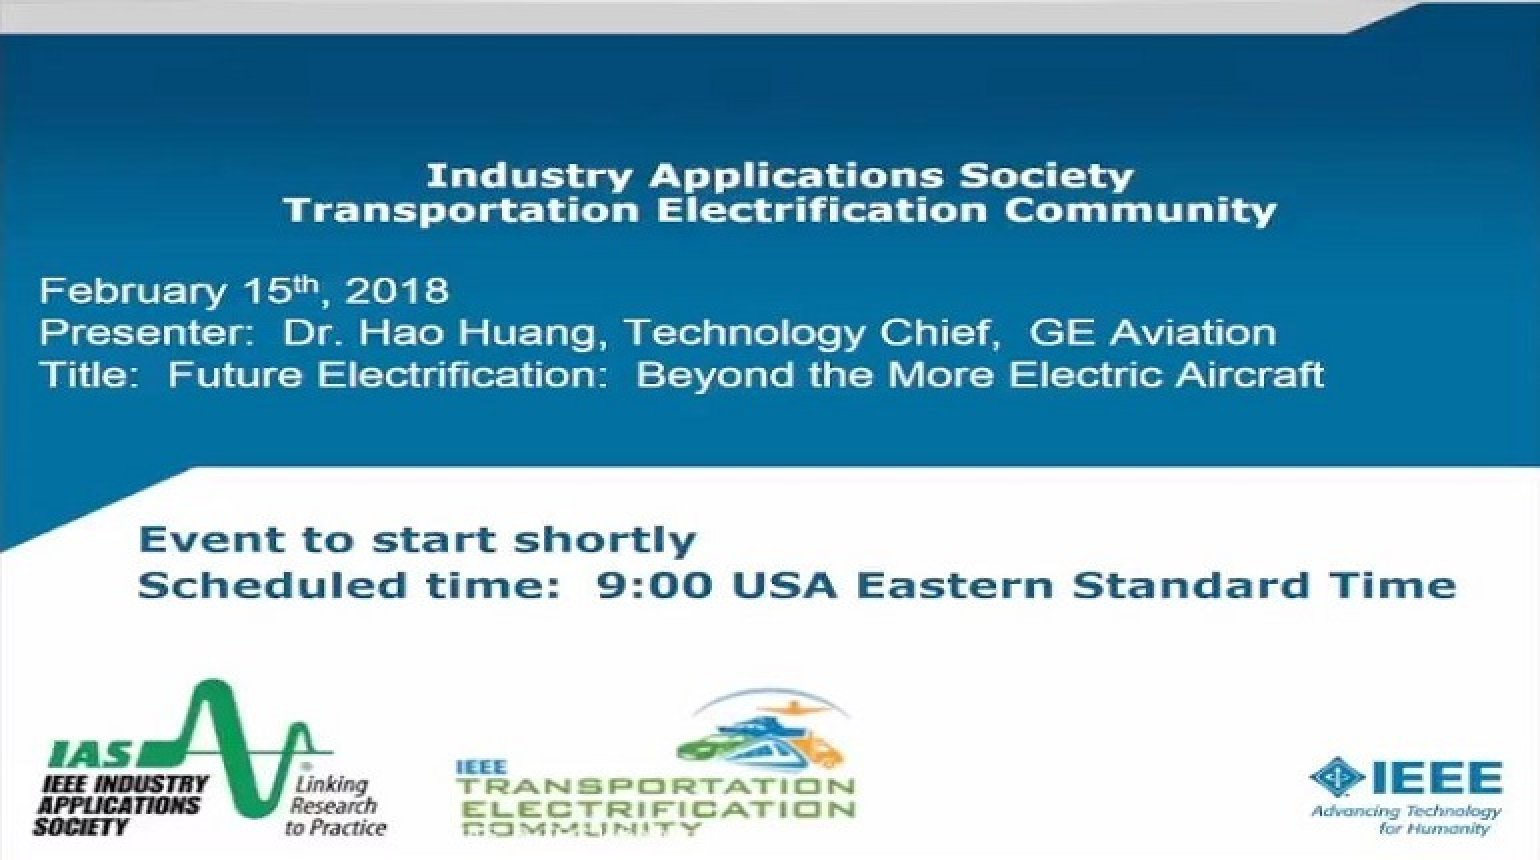 IAS Webinar Series - Future Electrification beyond the More Electric Aircraft